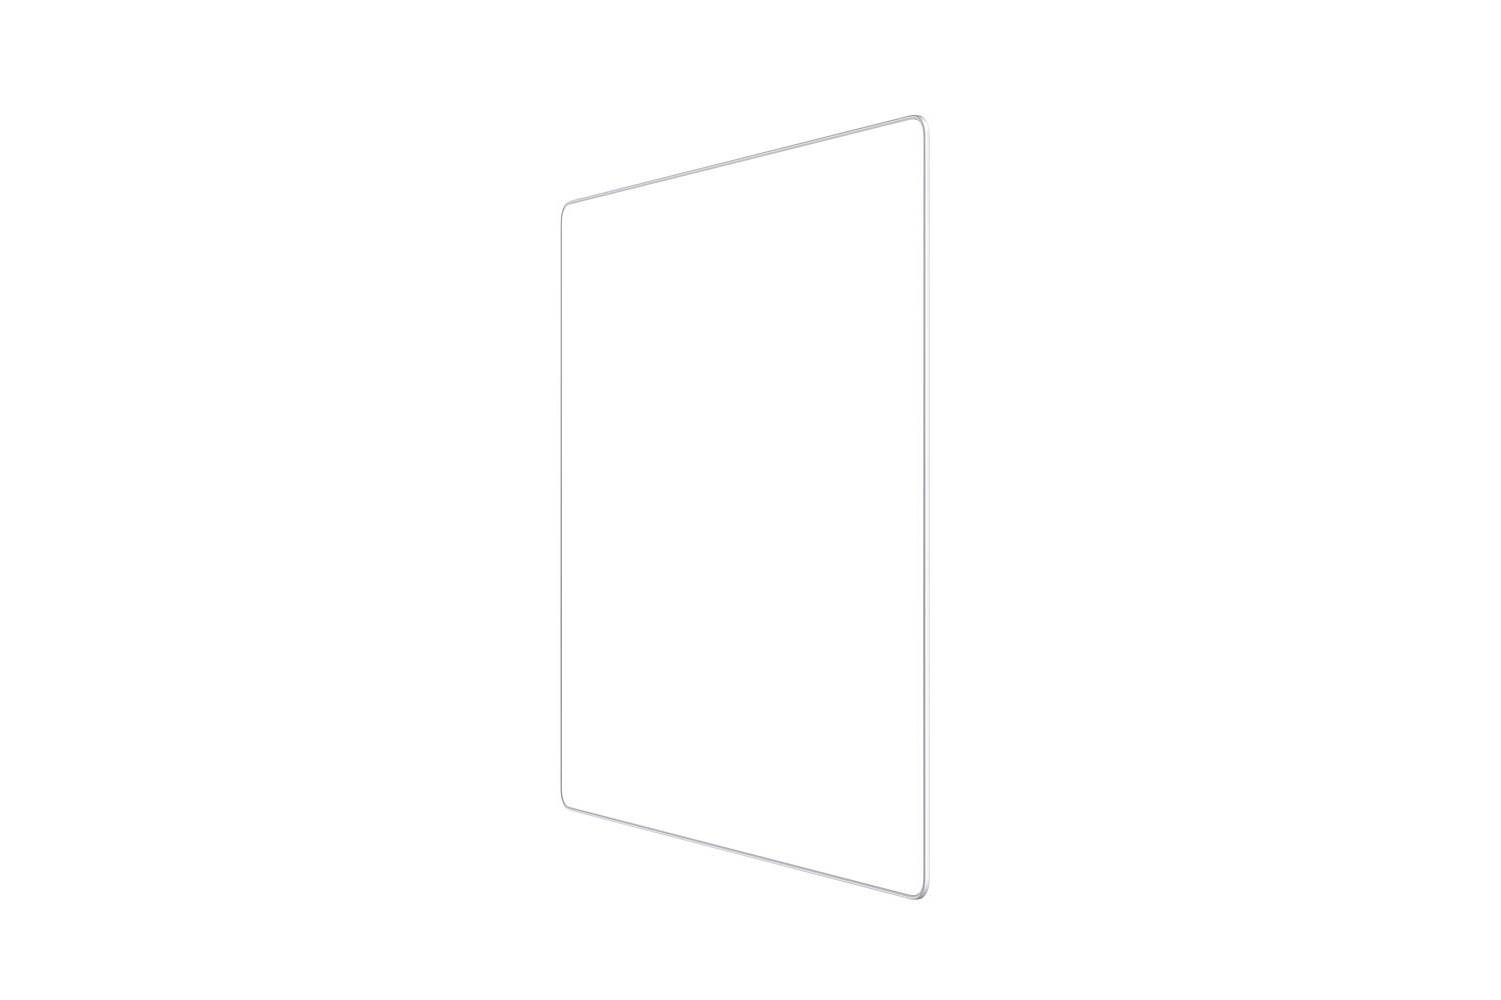 LED panel 60x60 backlit panel 600x600 backlight ultra-thin led flat panel light dimming 2